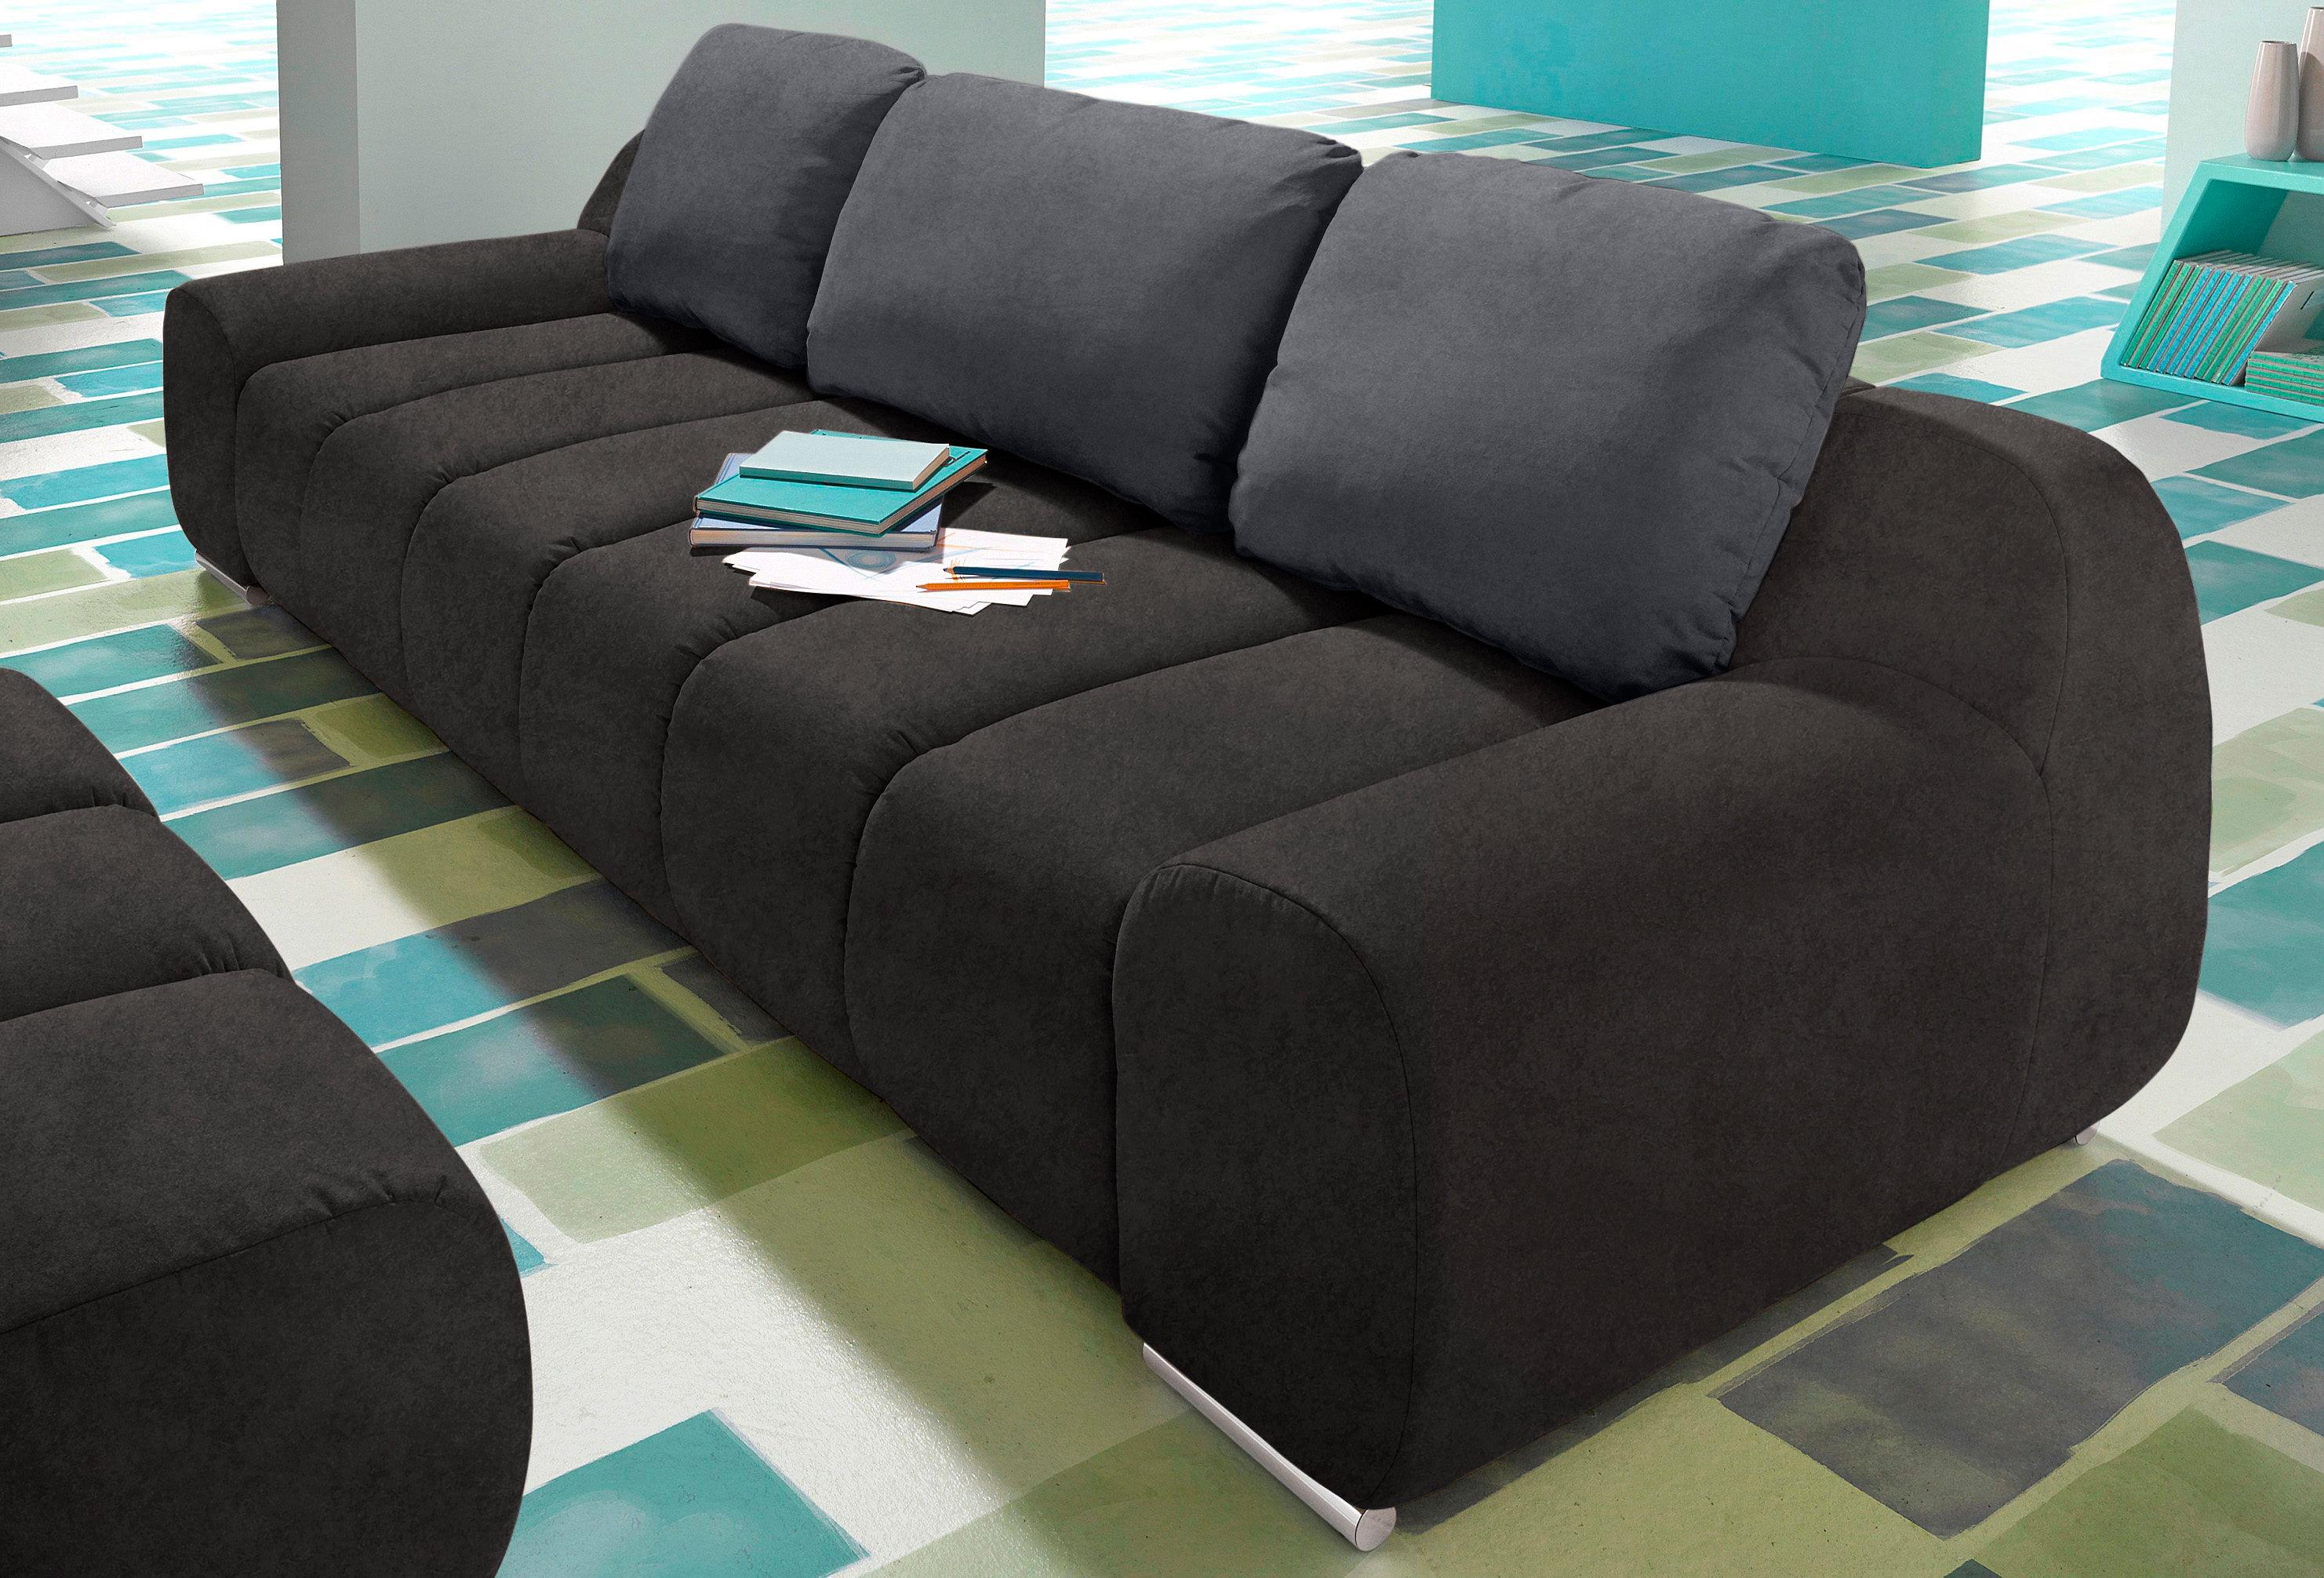 microfaser sofa professionell reinigen. Black Bedroom Furniture Sets. Home Design Ideas